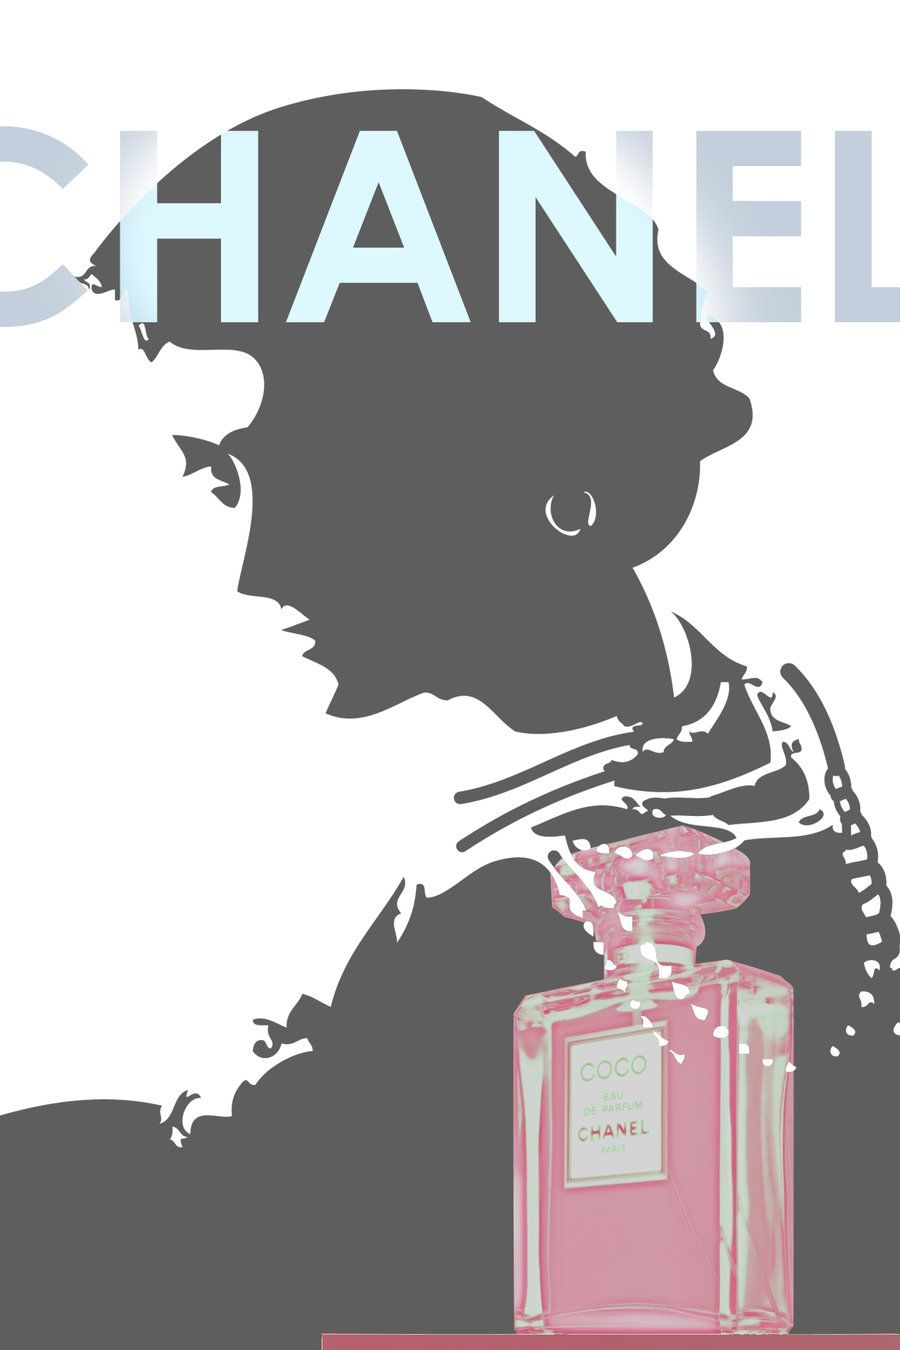 Coco Chanel Advertisement 2 By Kokorostudio On Deviantart Chanel Poster Chanel Ad Chanel Illustration